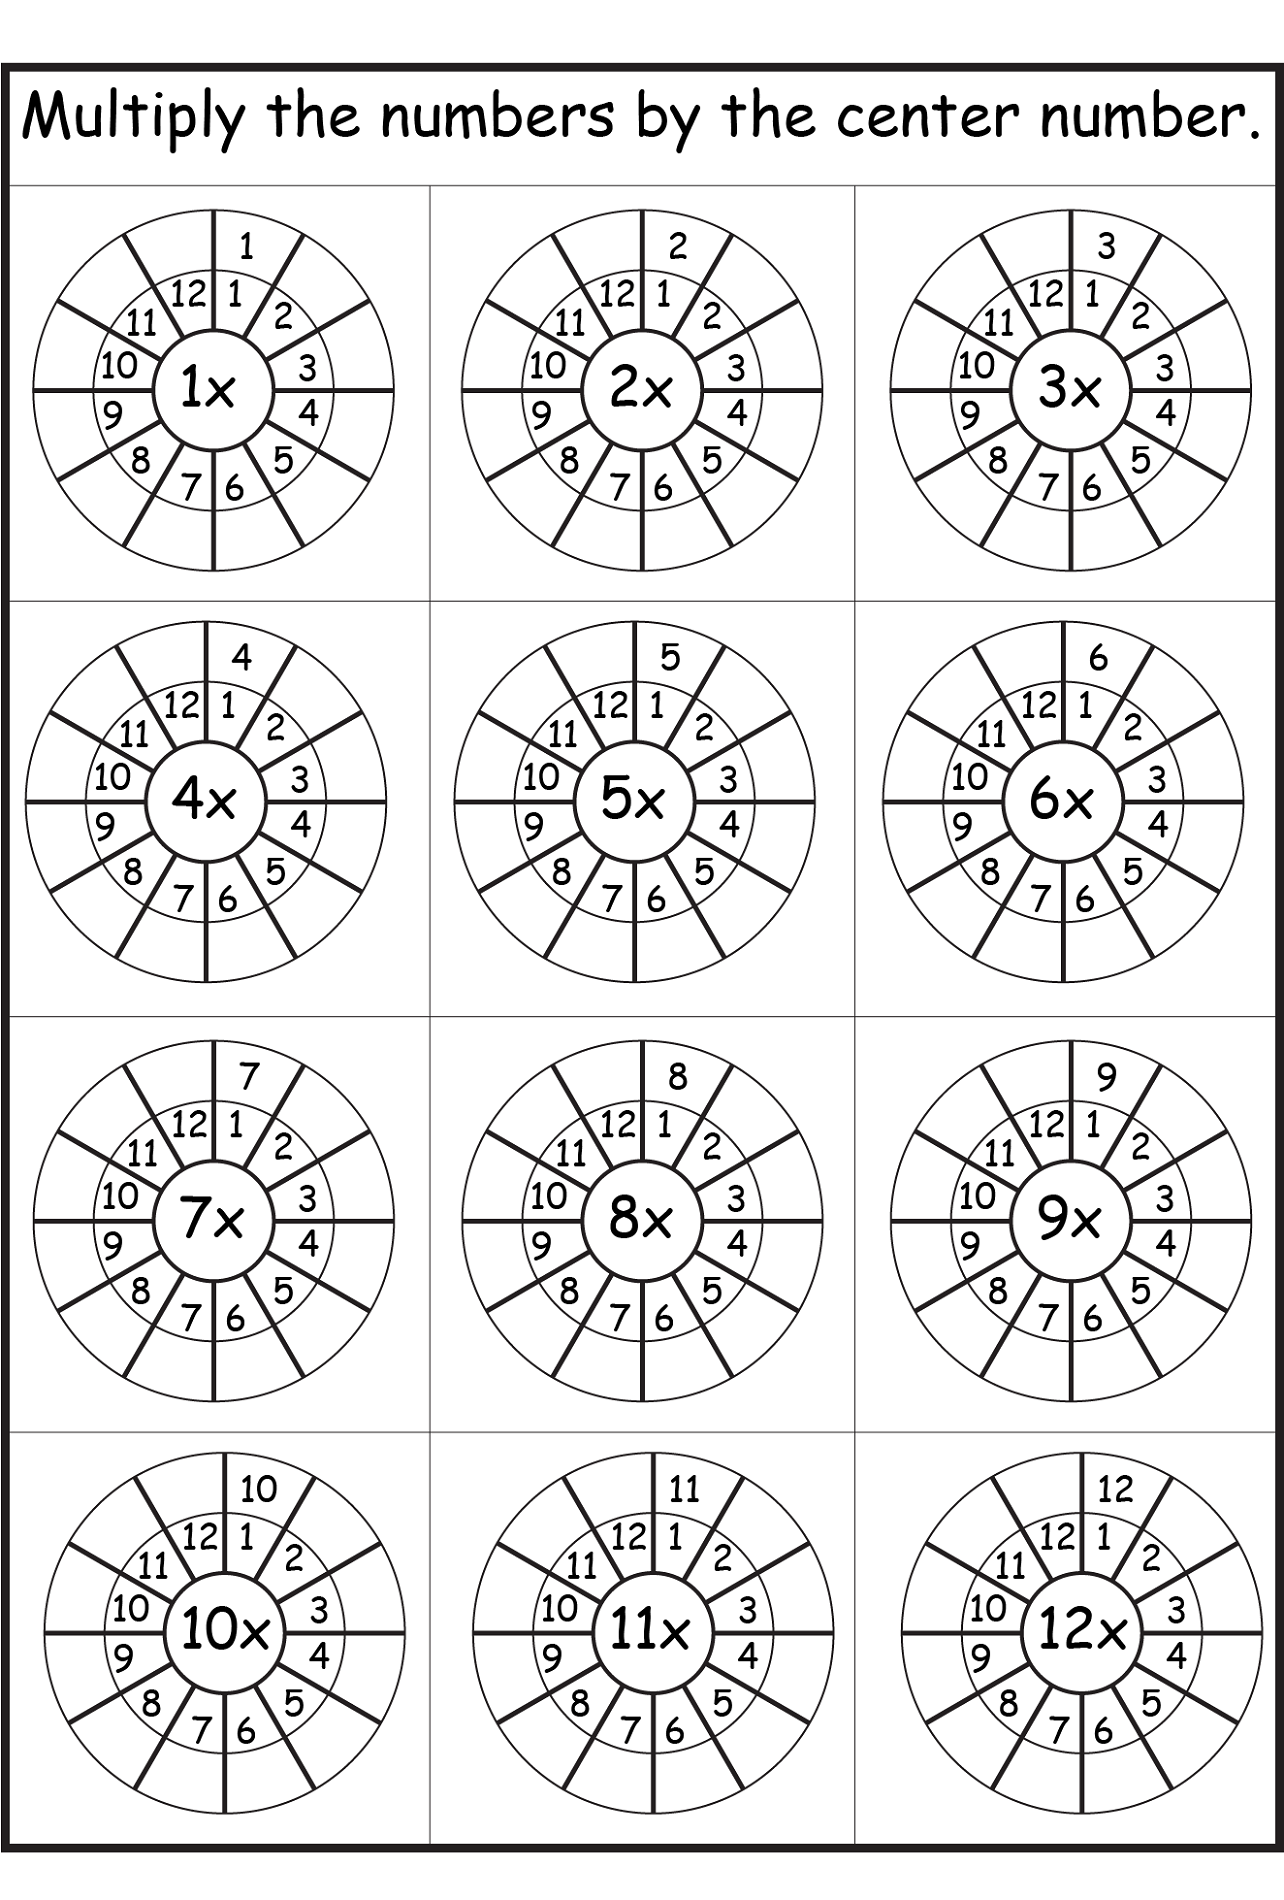 math worksheet : 1 times tables worksheets  activity shelter : Multiplication Table Worksheet